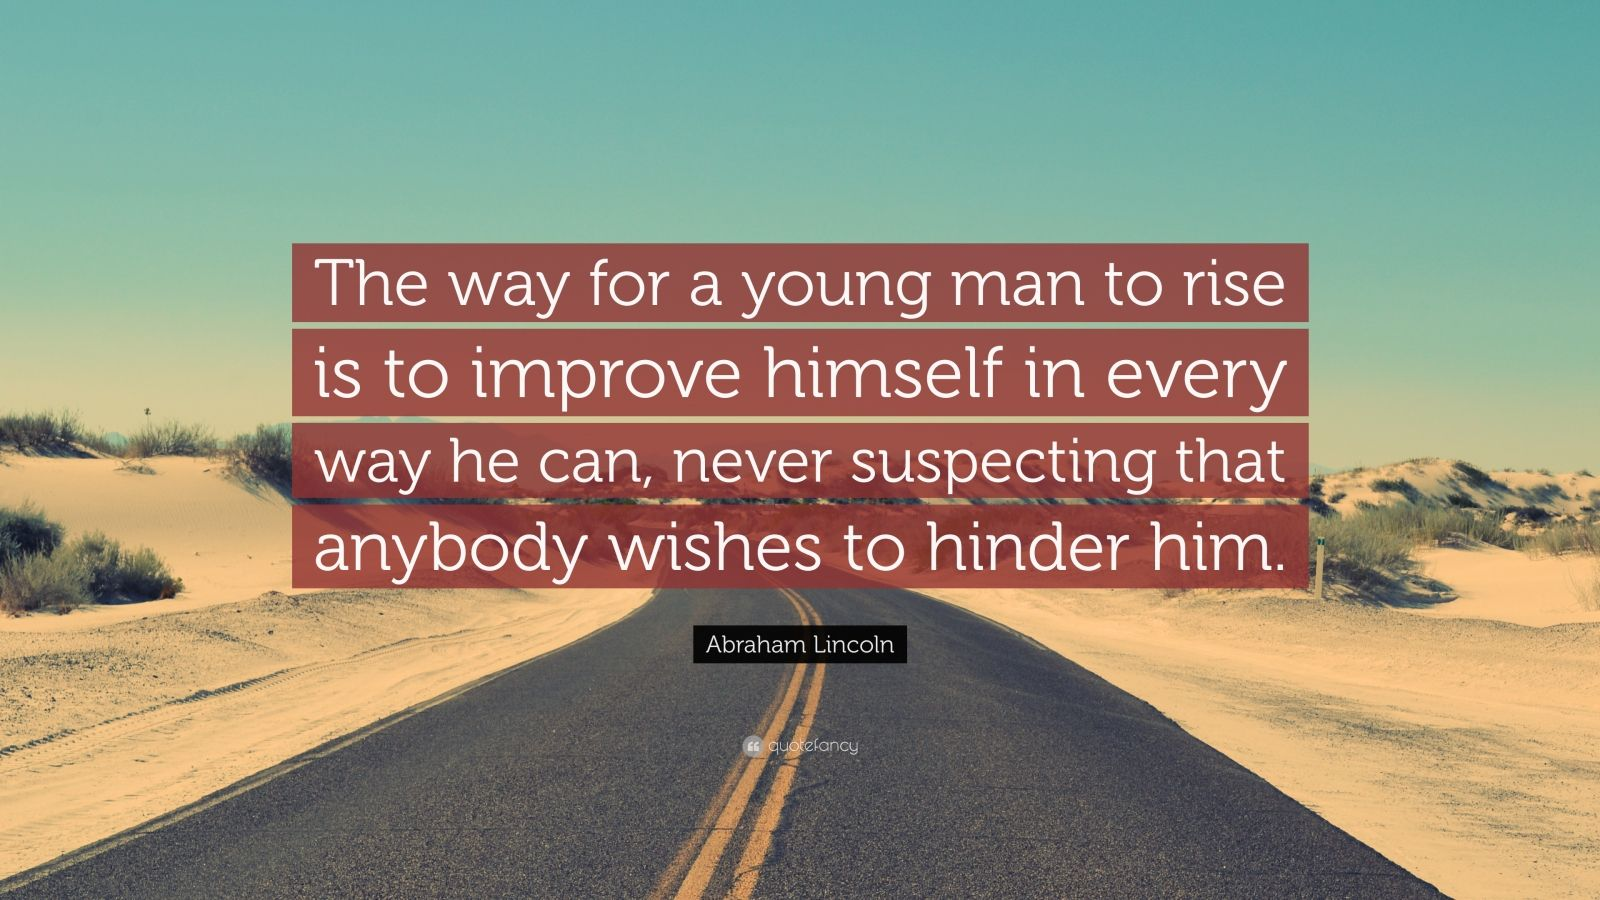 """Abraham Lincoln Quote: """"The way for a young man to rise is to improve himself in every way he can, never suspecting that anybody wishes to hinder him."""""""